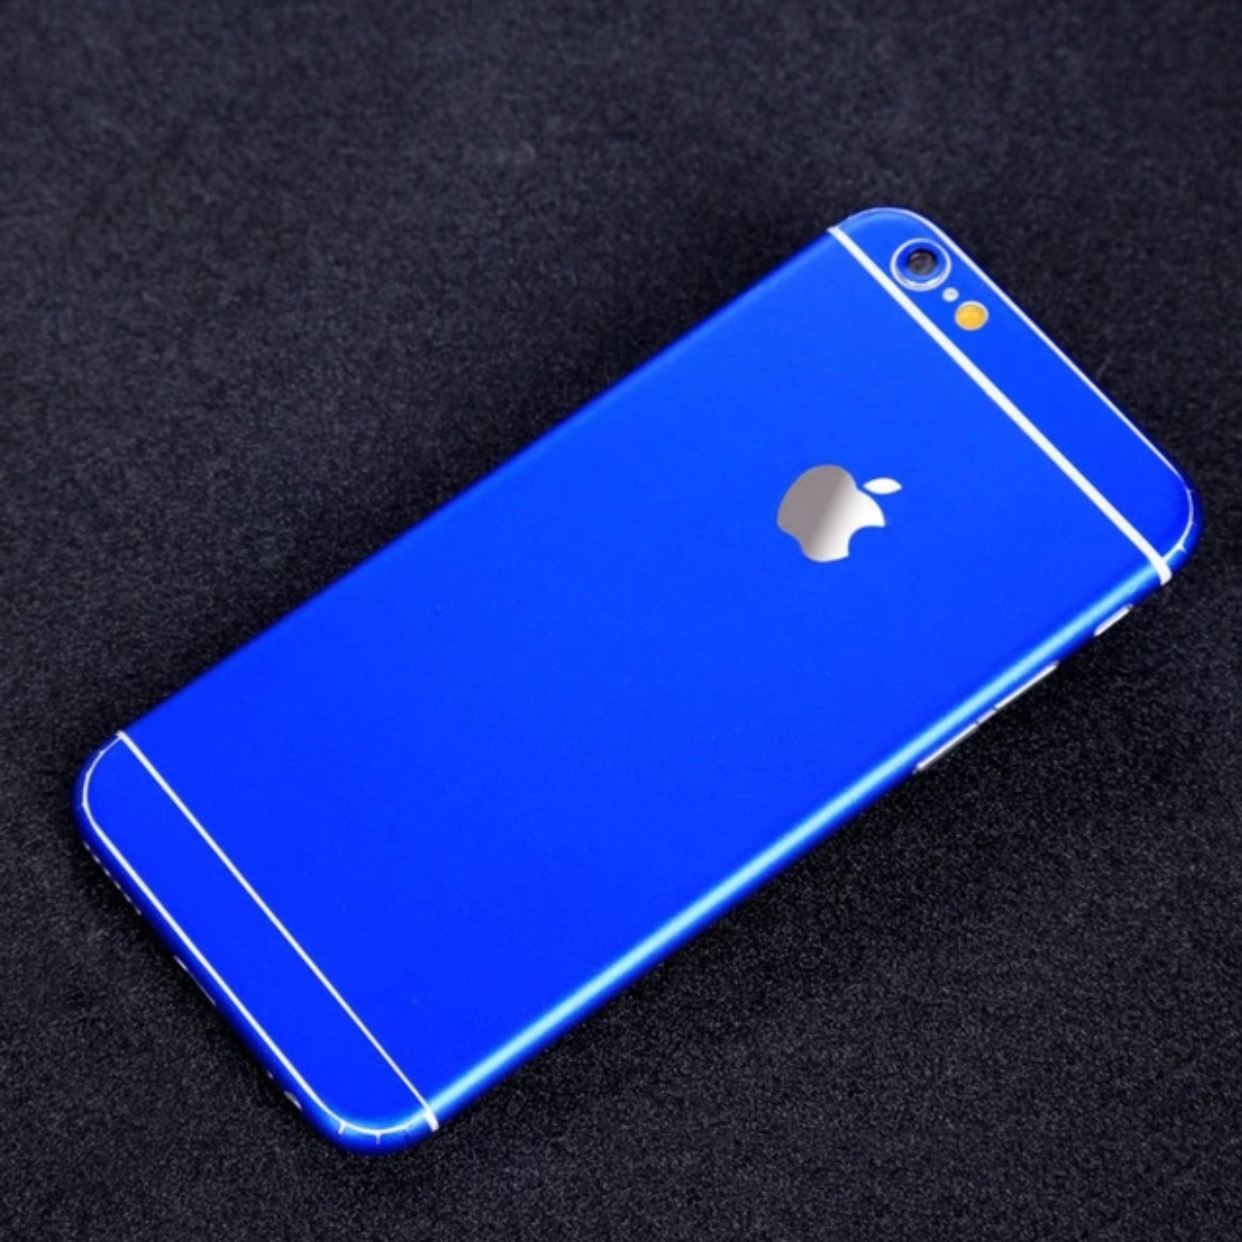 Matte Royal Blue iPhone Sticker Skin Cover